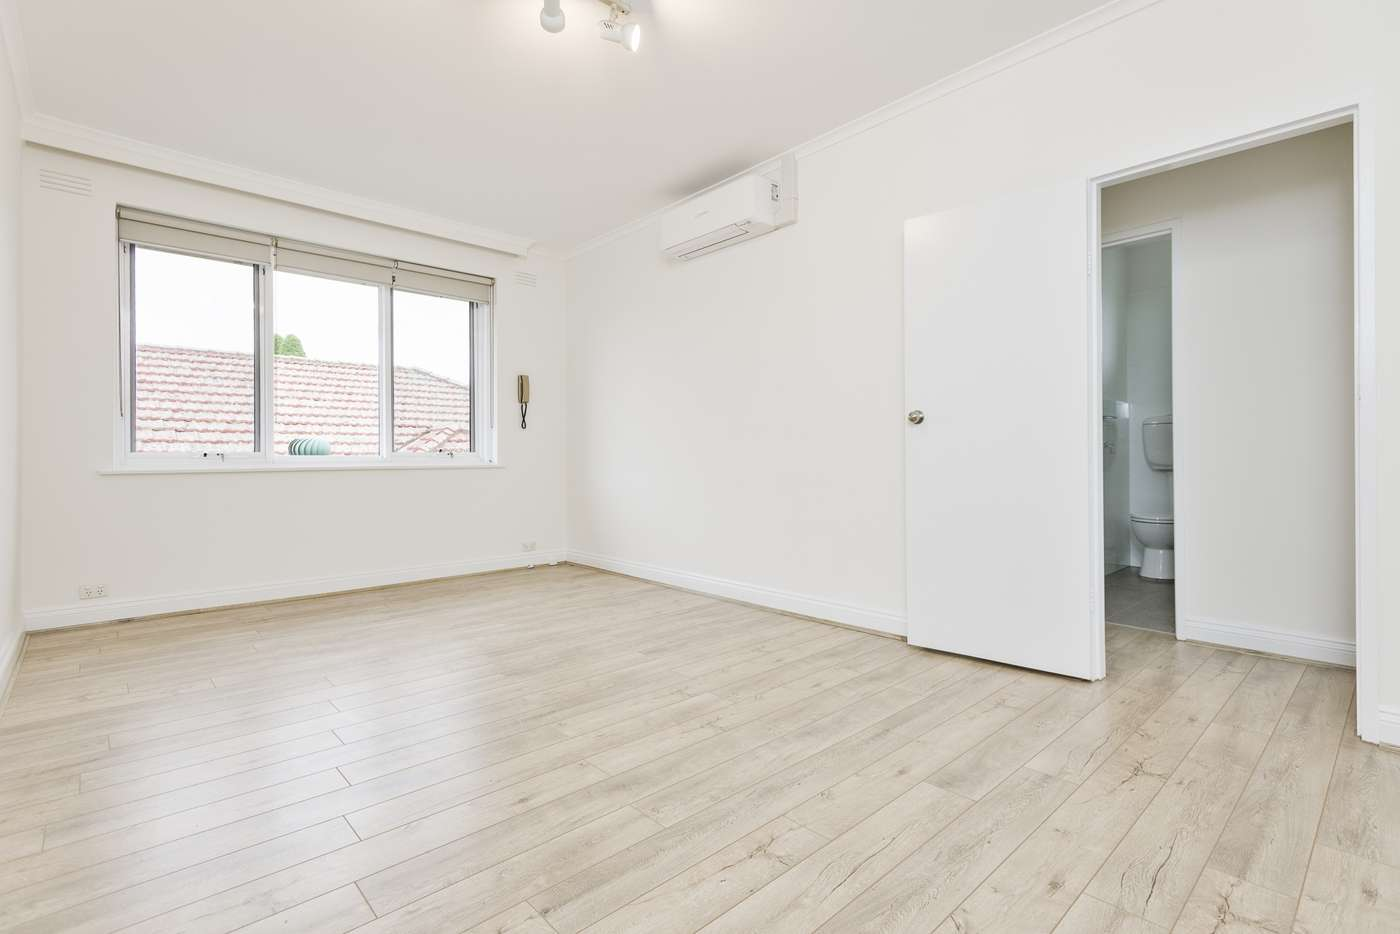 Main view of Homely apartment listing, 4/139 Shaftesbury Parade, Thornbury VIC 3071